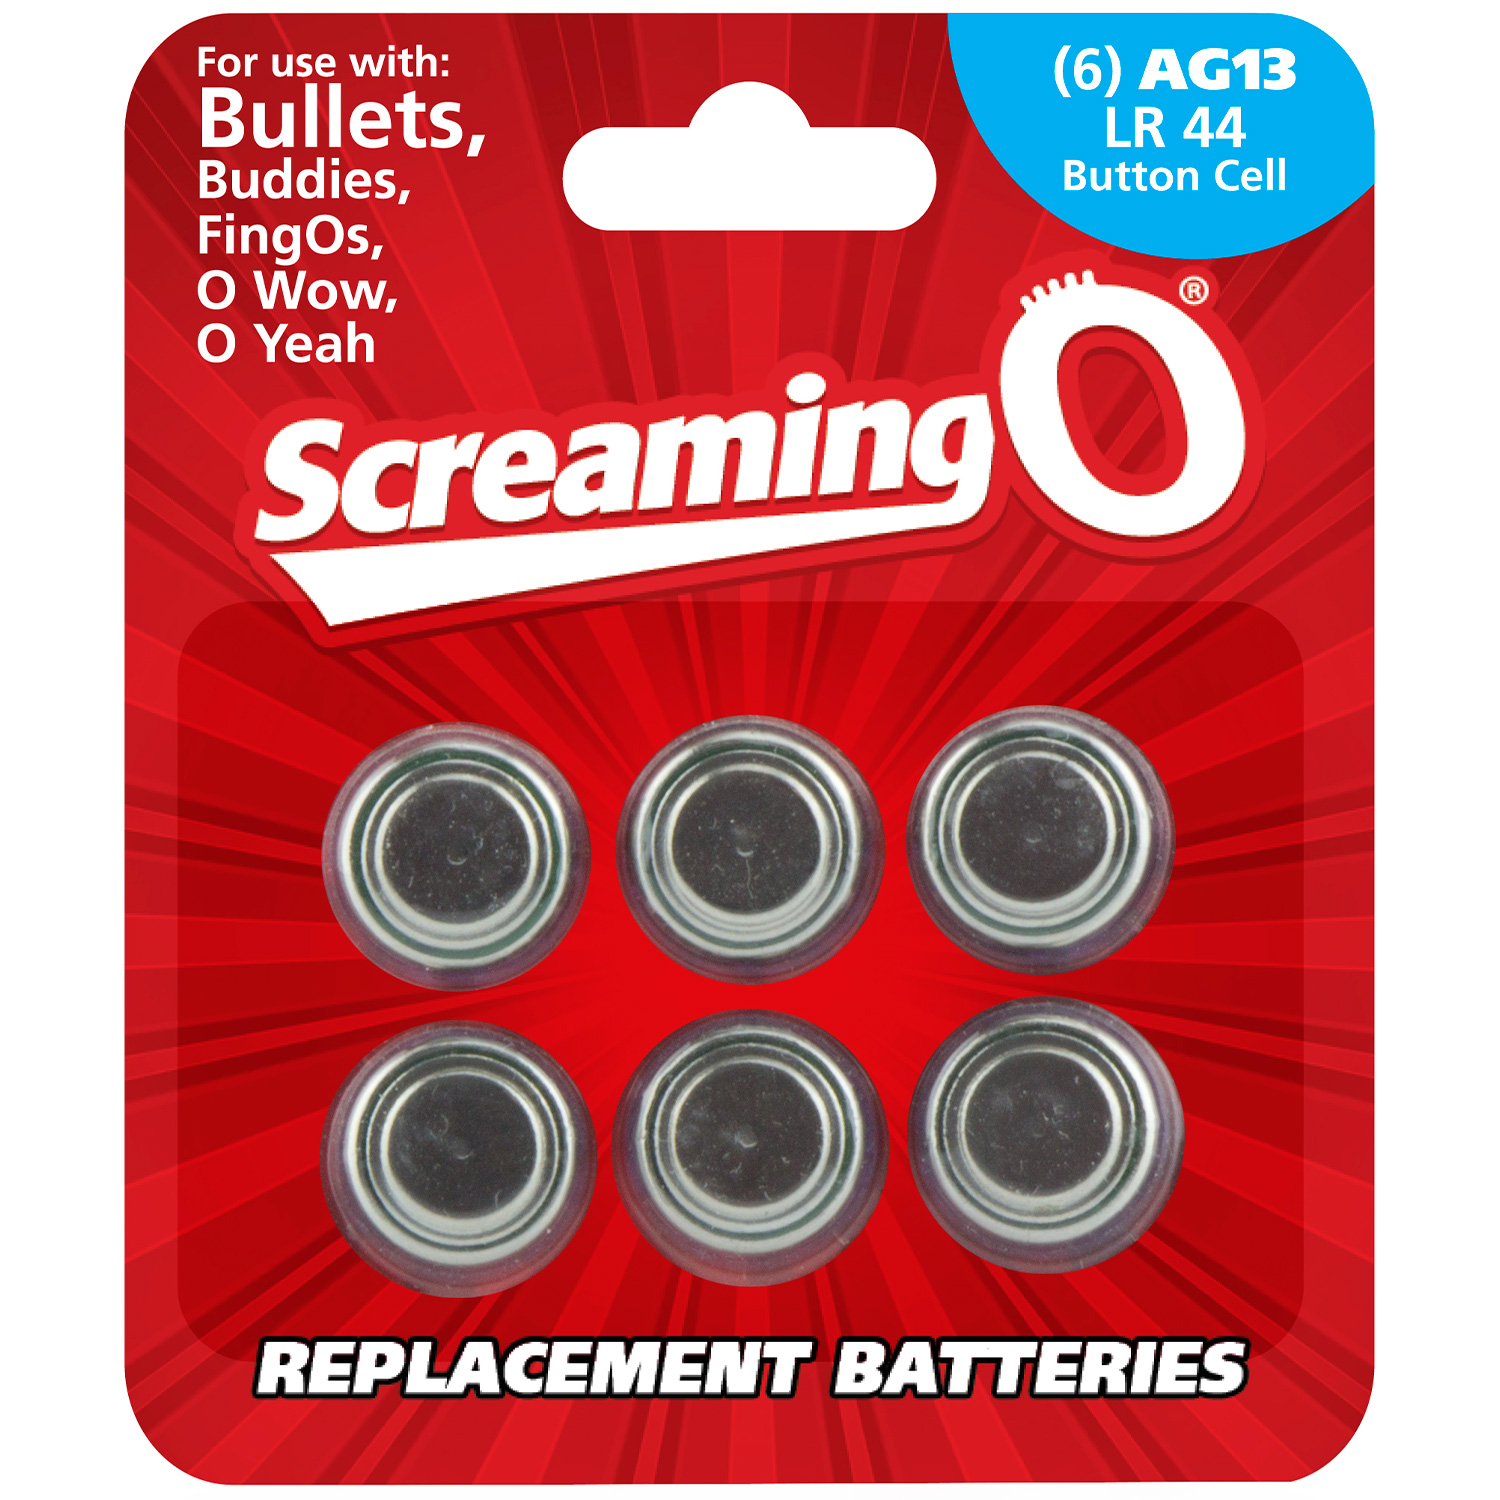 Screaming O Batterier AG13 LR44 6-pack | Brands, Screaming O, Batterier | Intimast.se - Sexleksaker